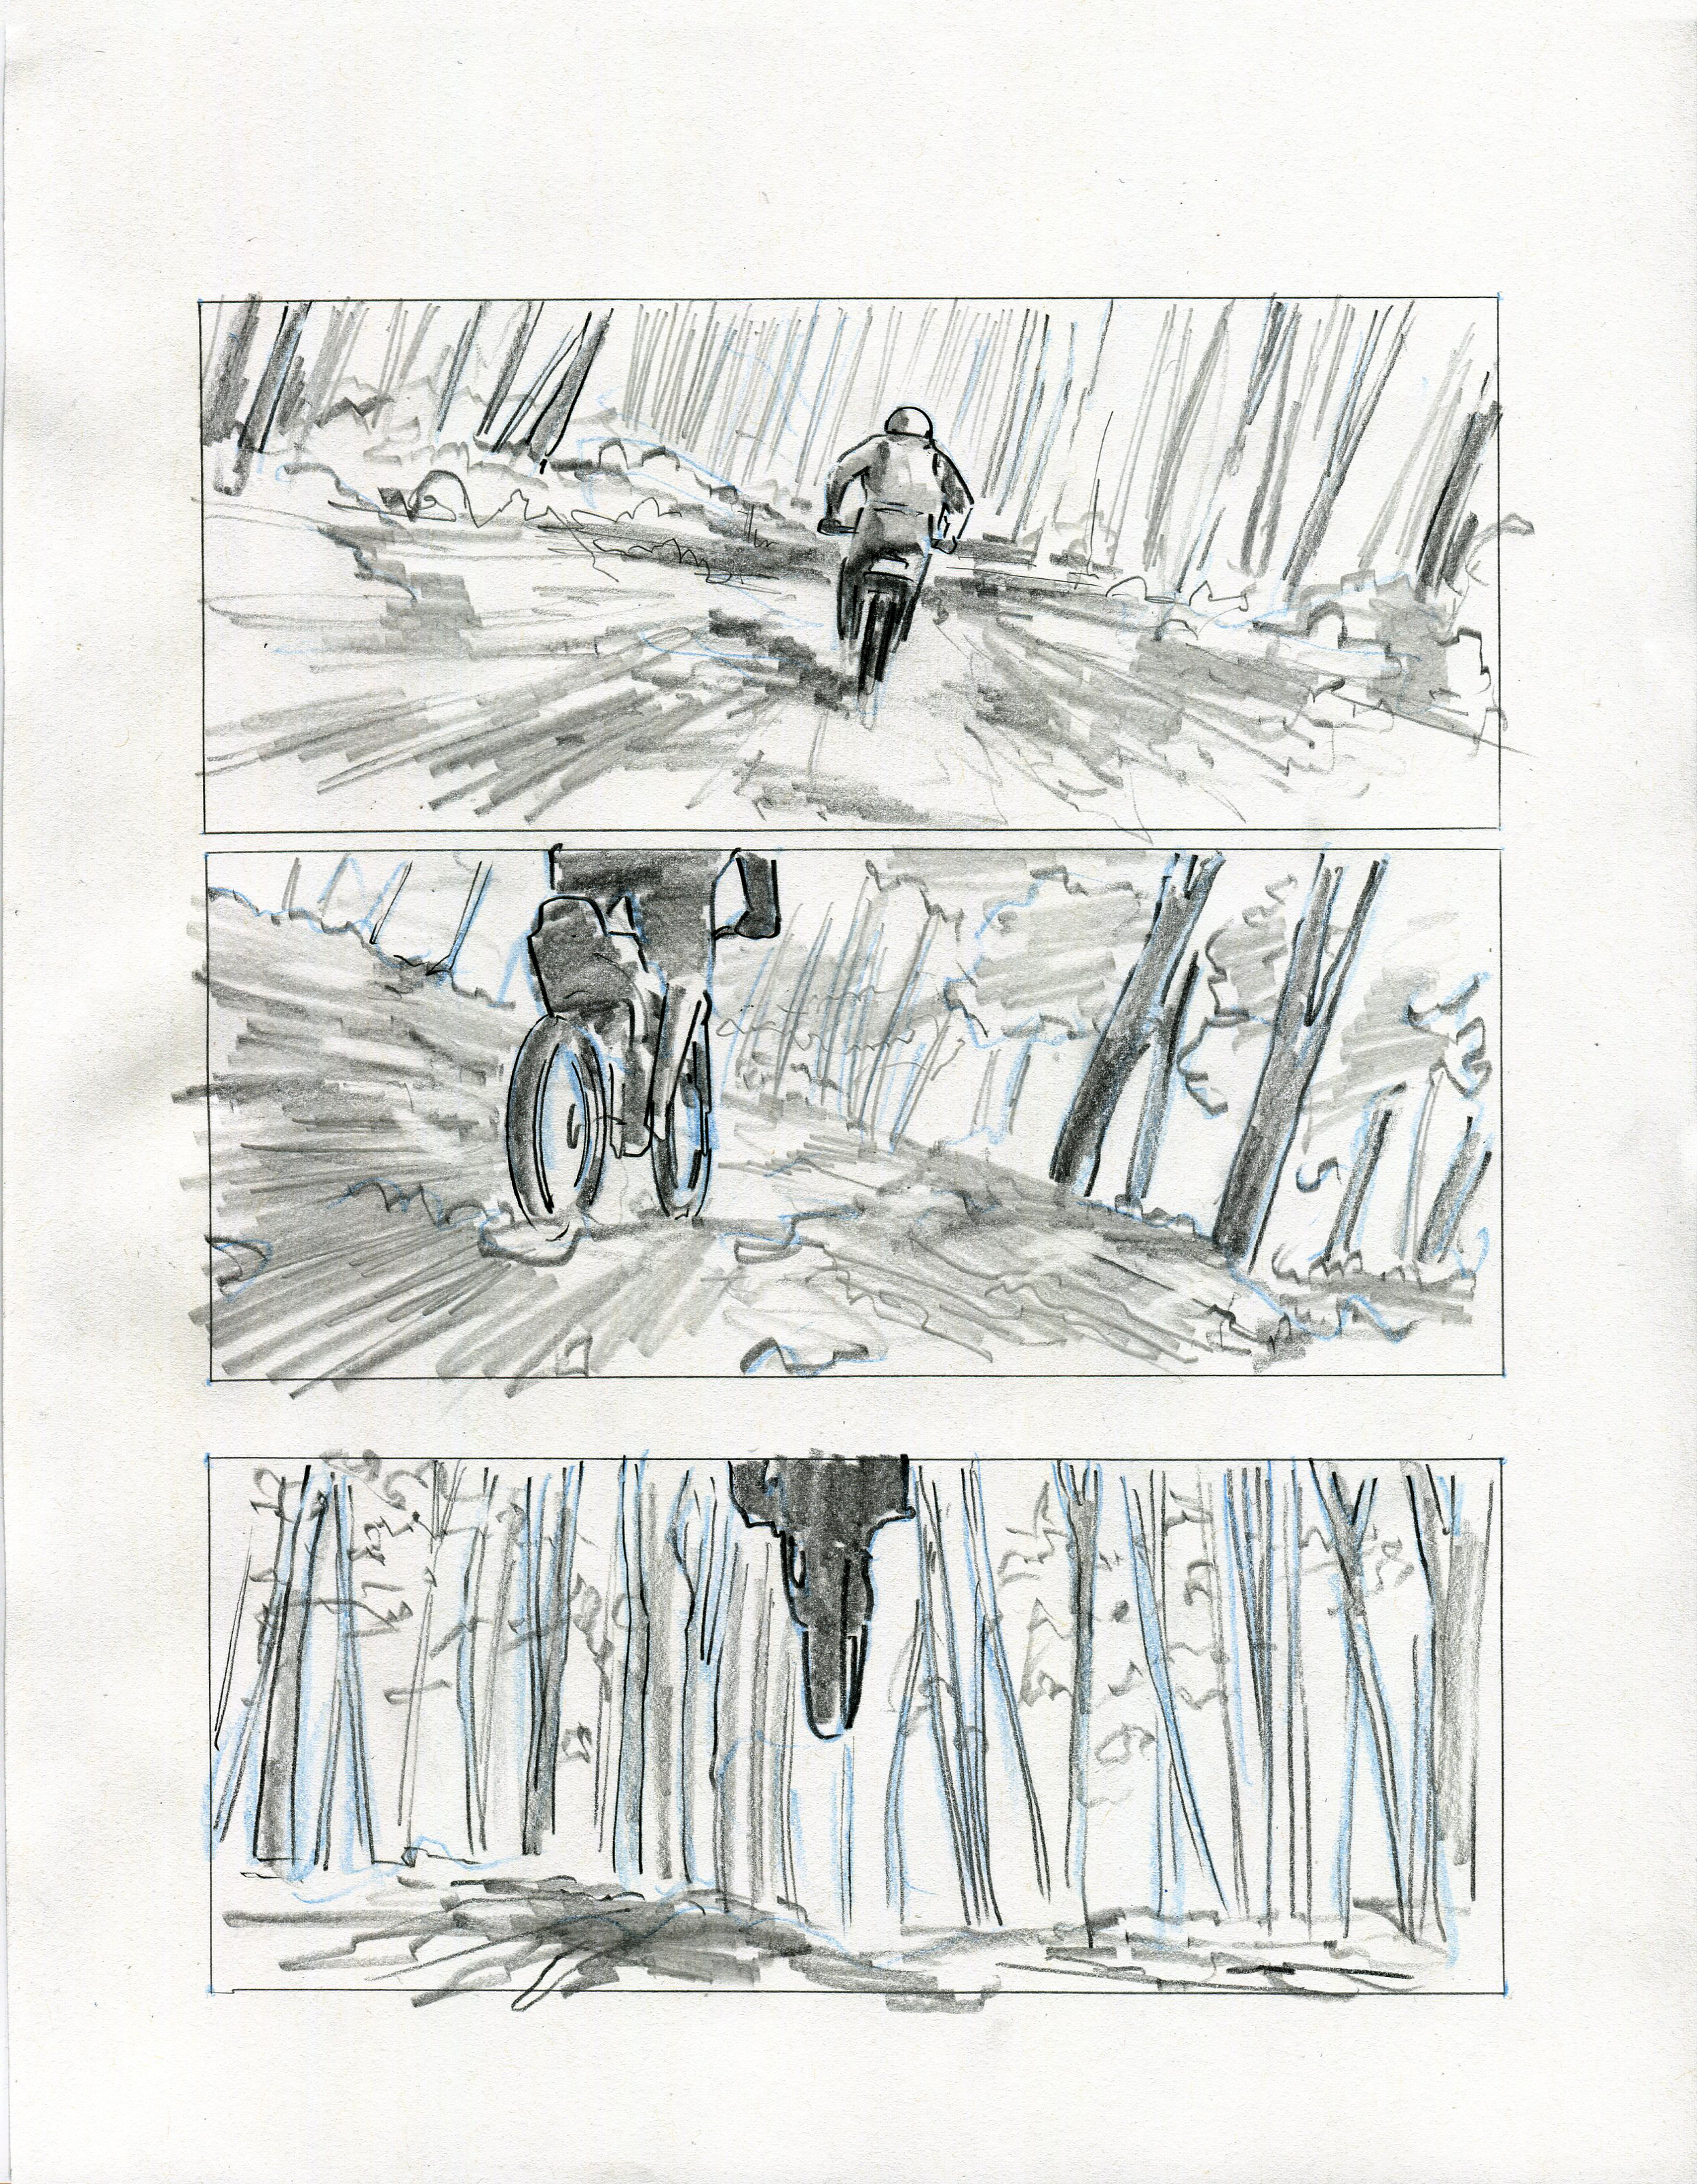 Action sequence  boards for a commercial directed by Rupert Wyatt, director of  Rise of the Planet of the Apes .